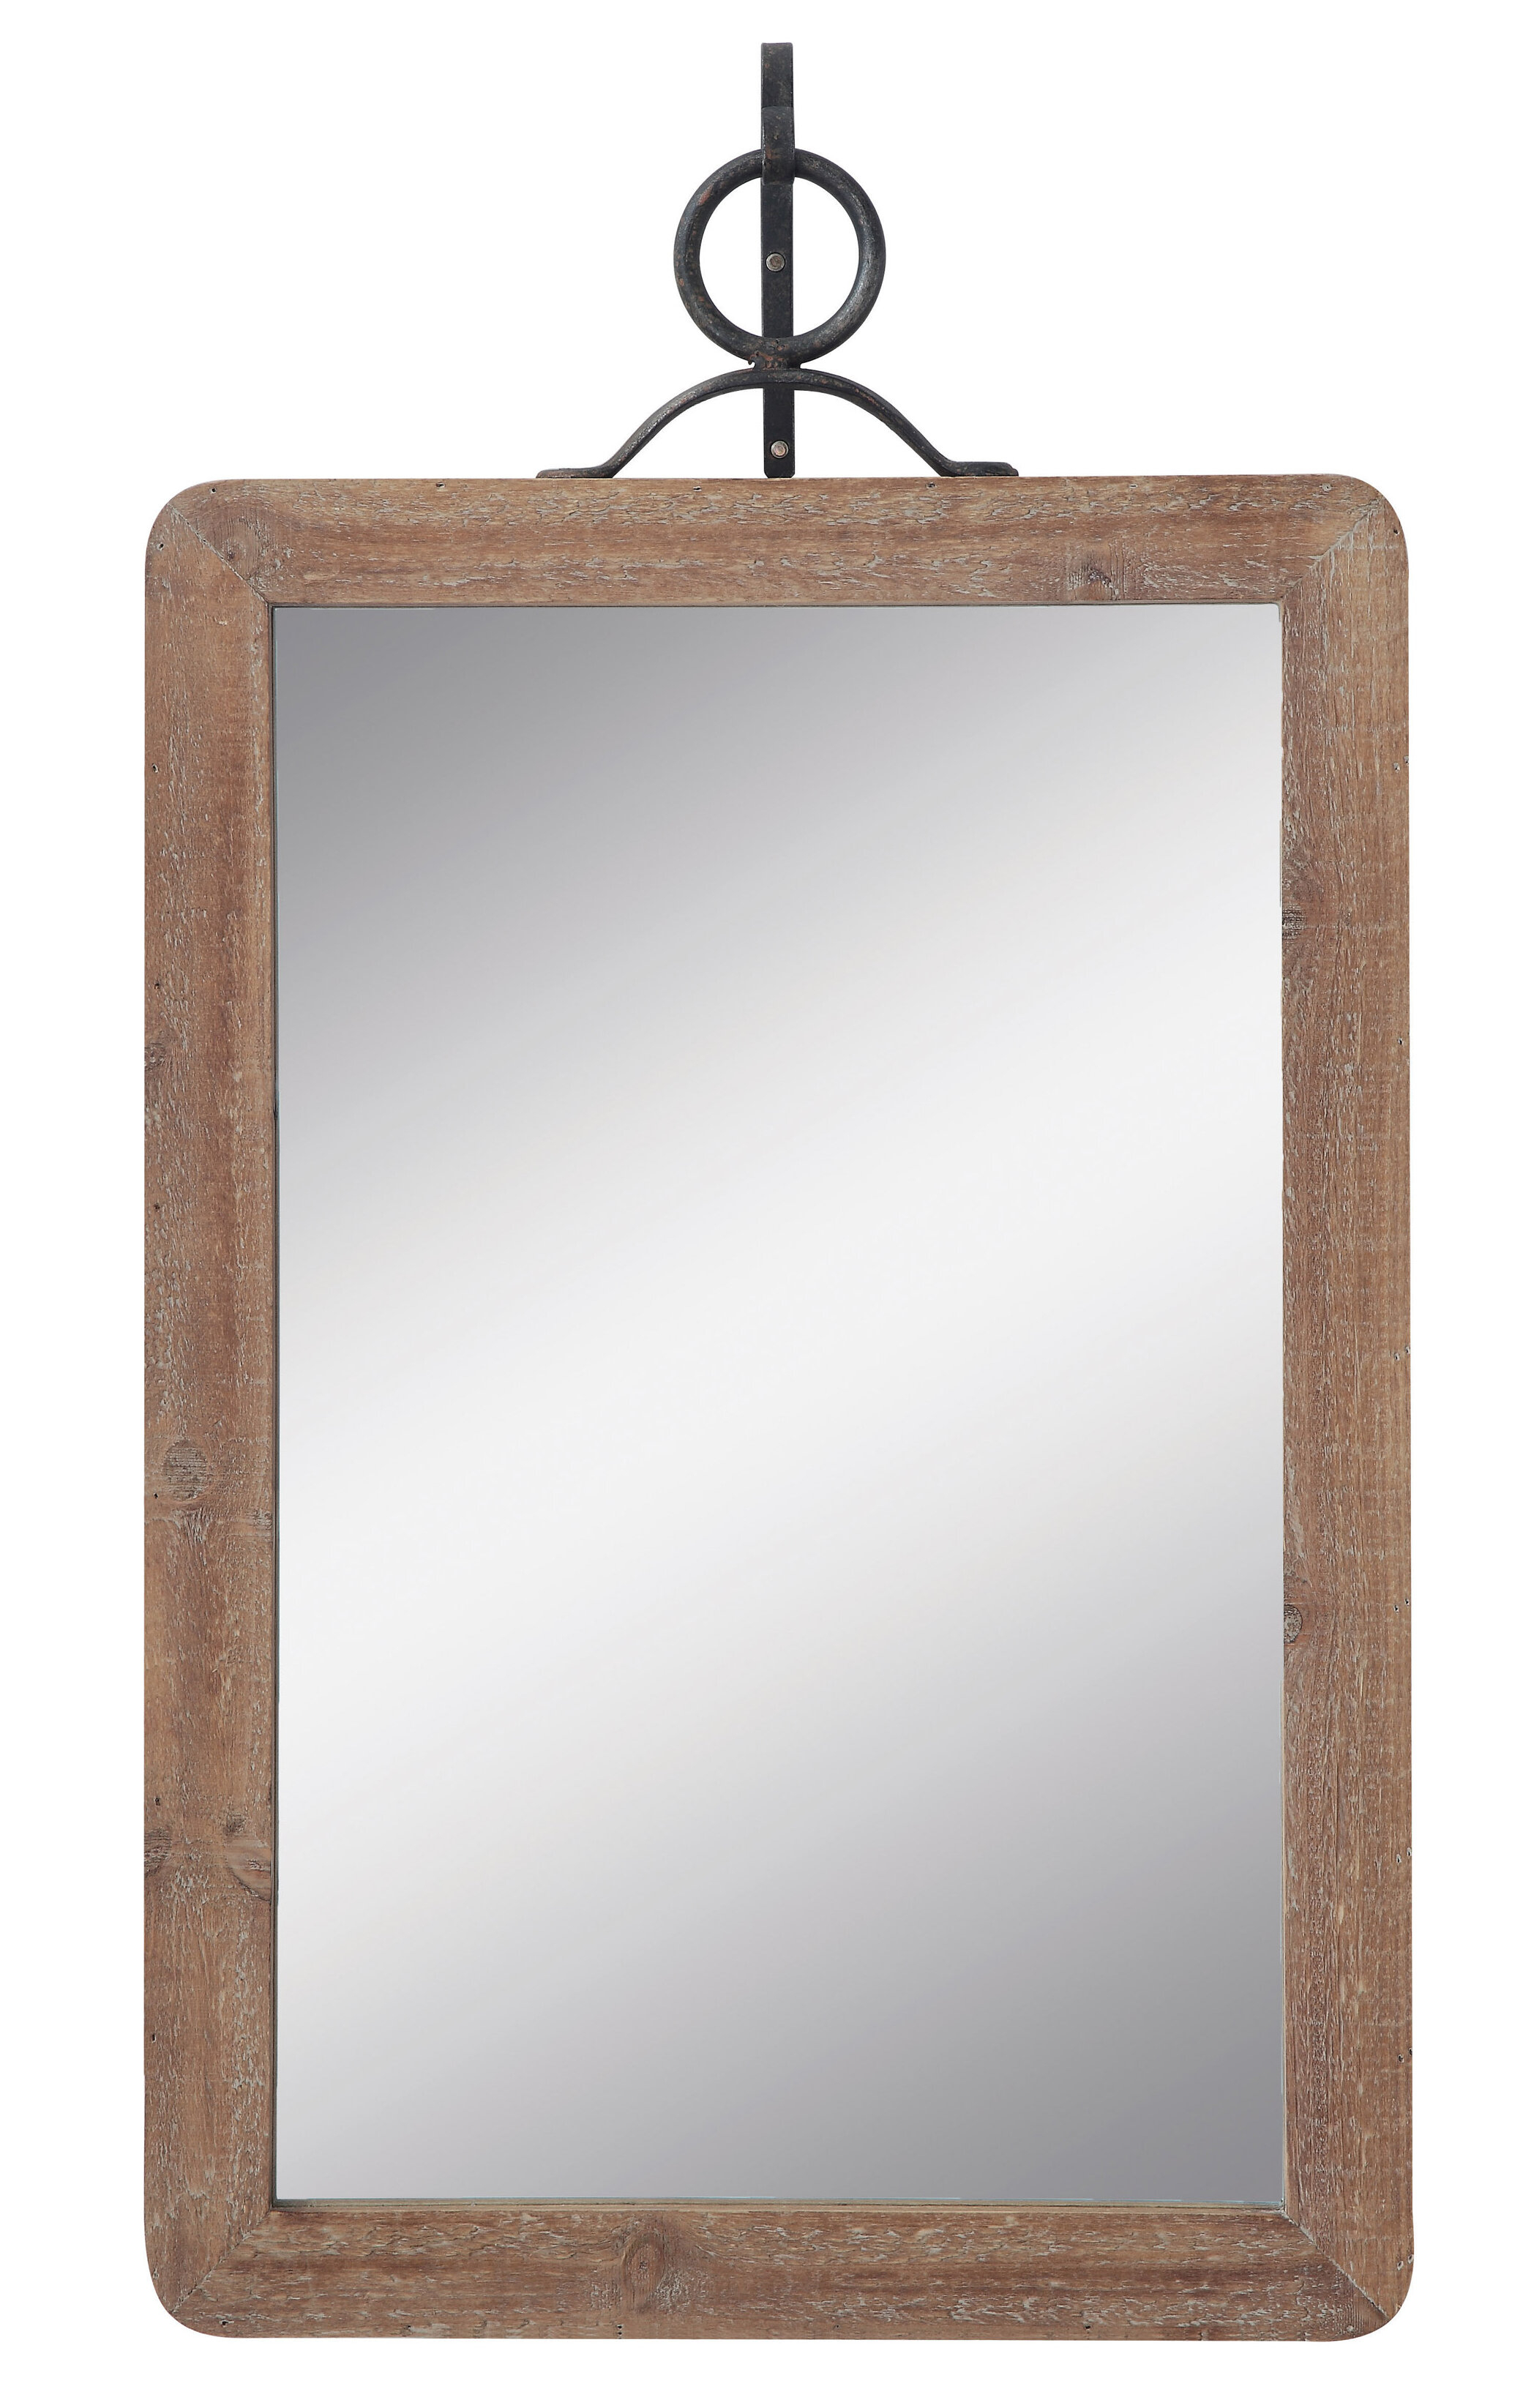 Anzell Large Wood Framed Rectangle Traditional Accent Mirror with Bartolo Accent Mirrors (Image 4 of 30)